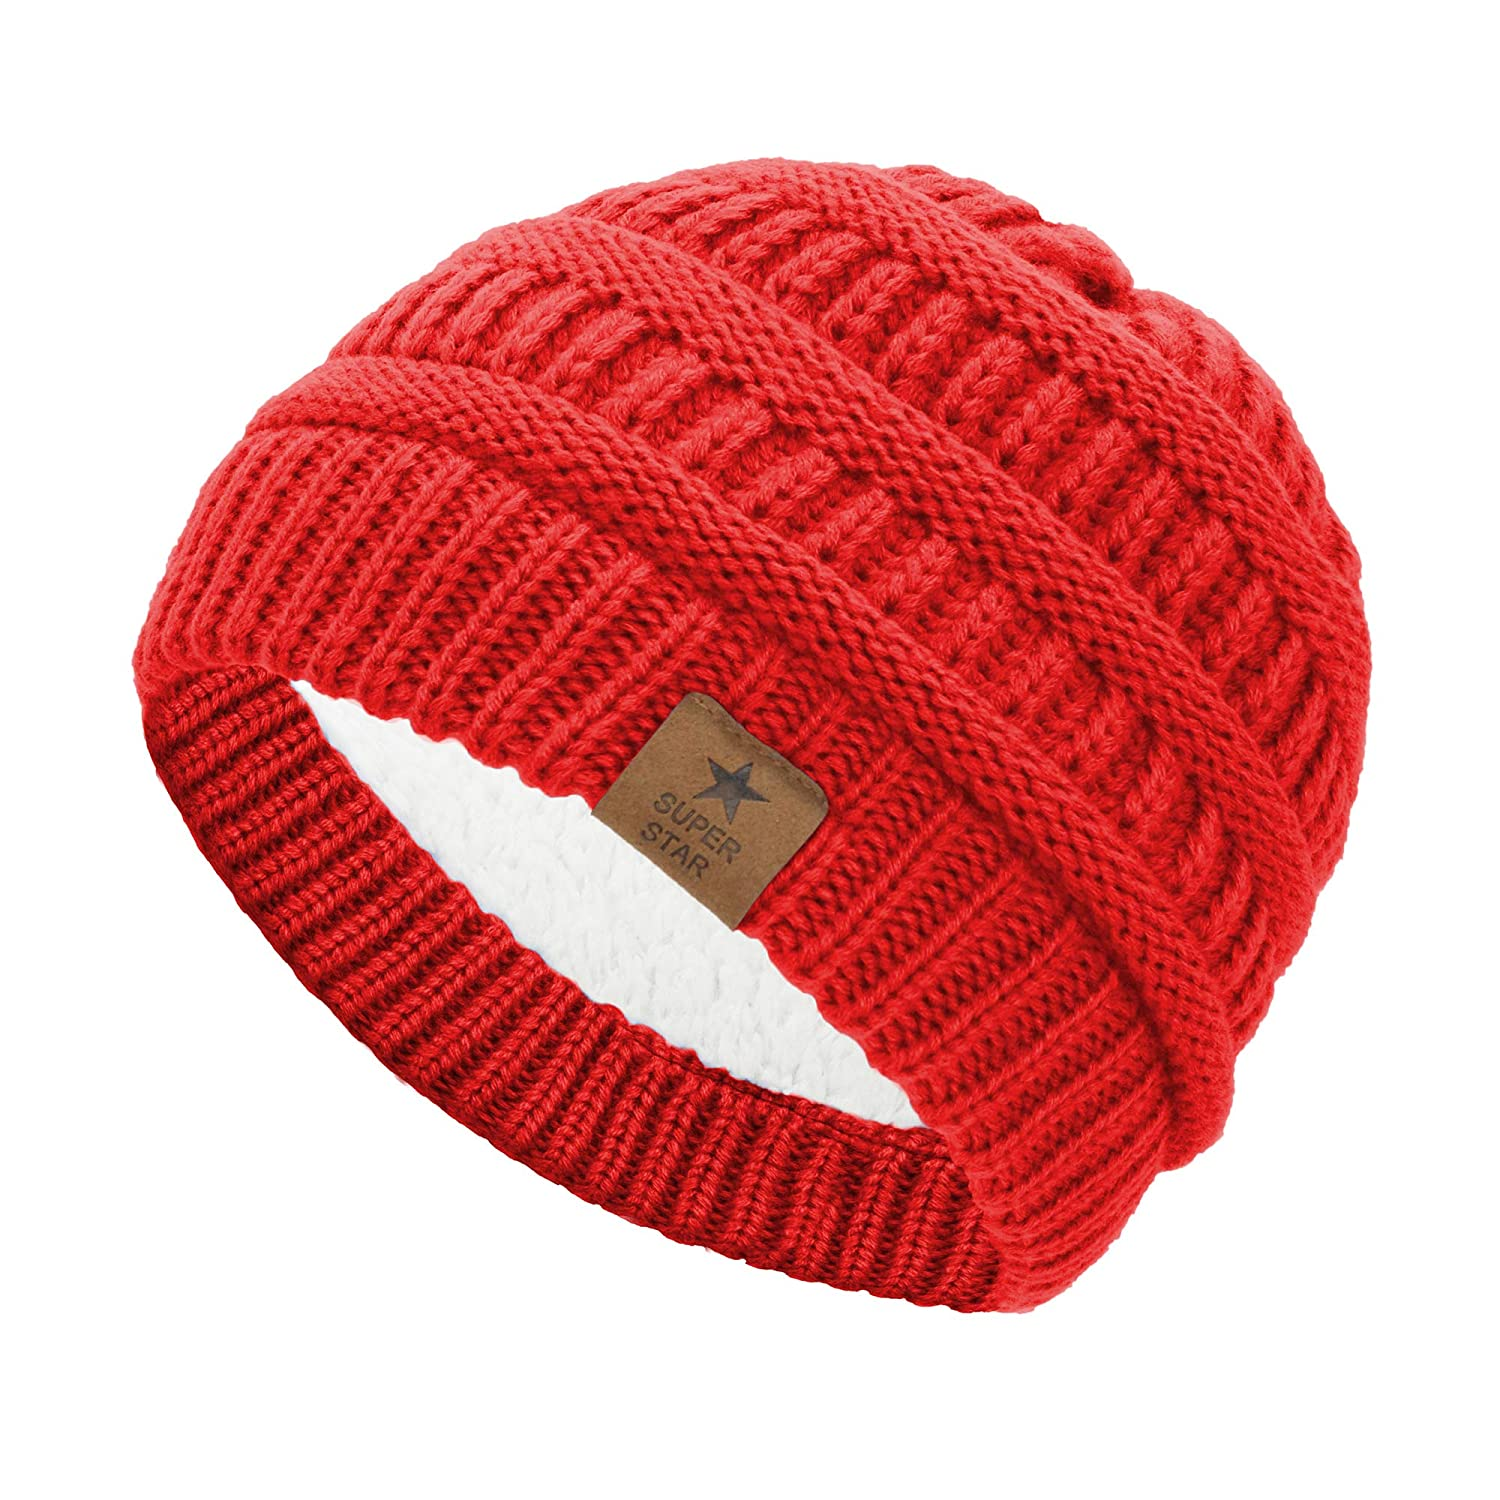 1 Pack Red Durio Unisex Cotton Cute Infant Beanie Hat Toddler Baby Kids Cap Soft Warm Adjustable Boys Girls Hat